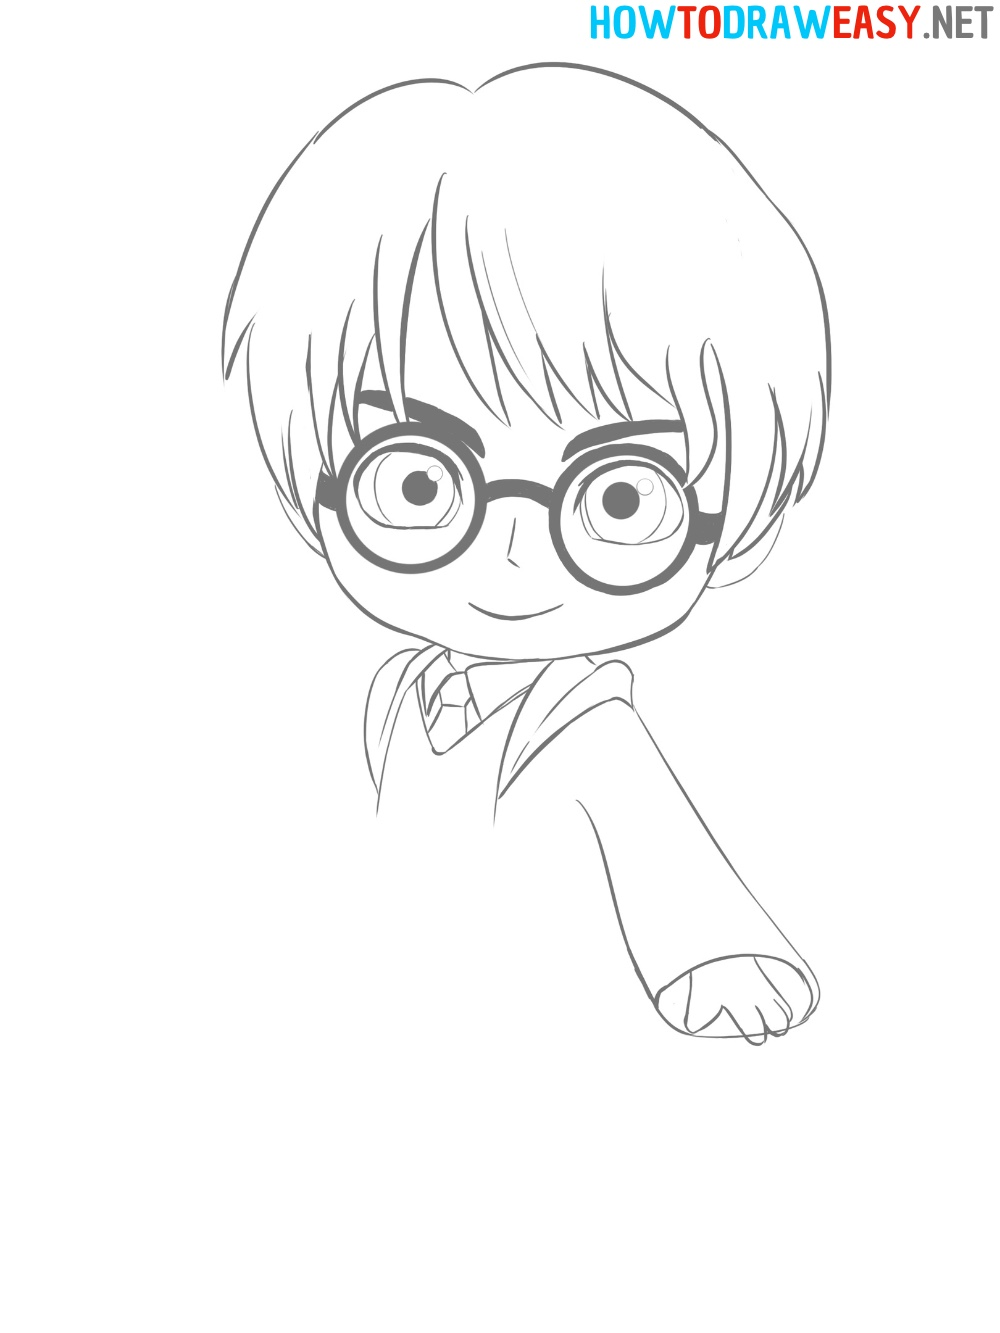 How to Draw Harry Potter Anime